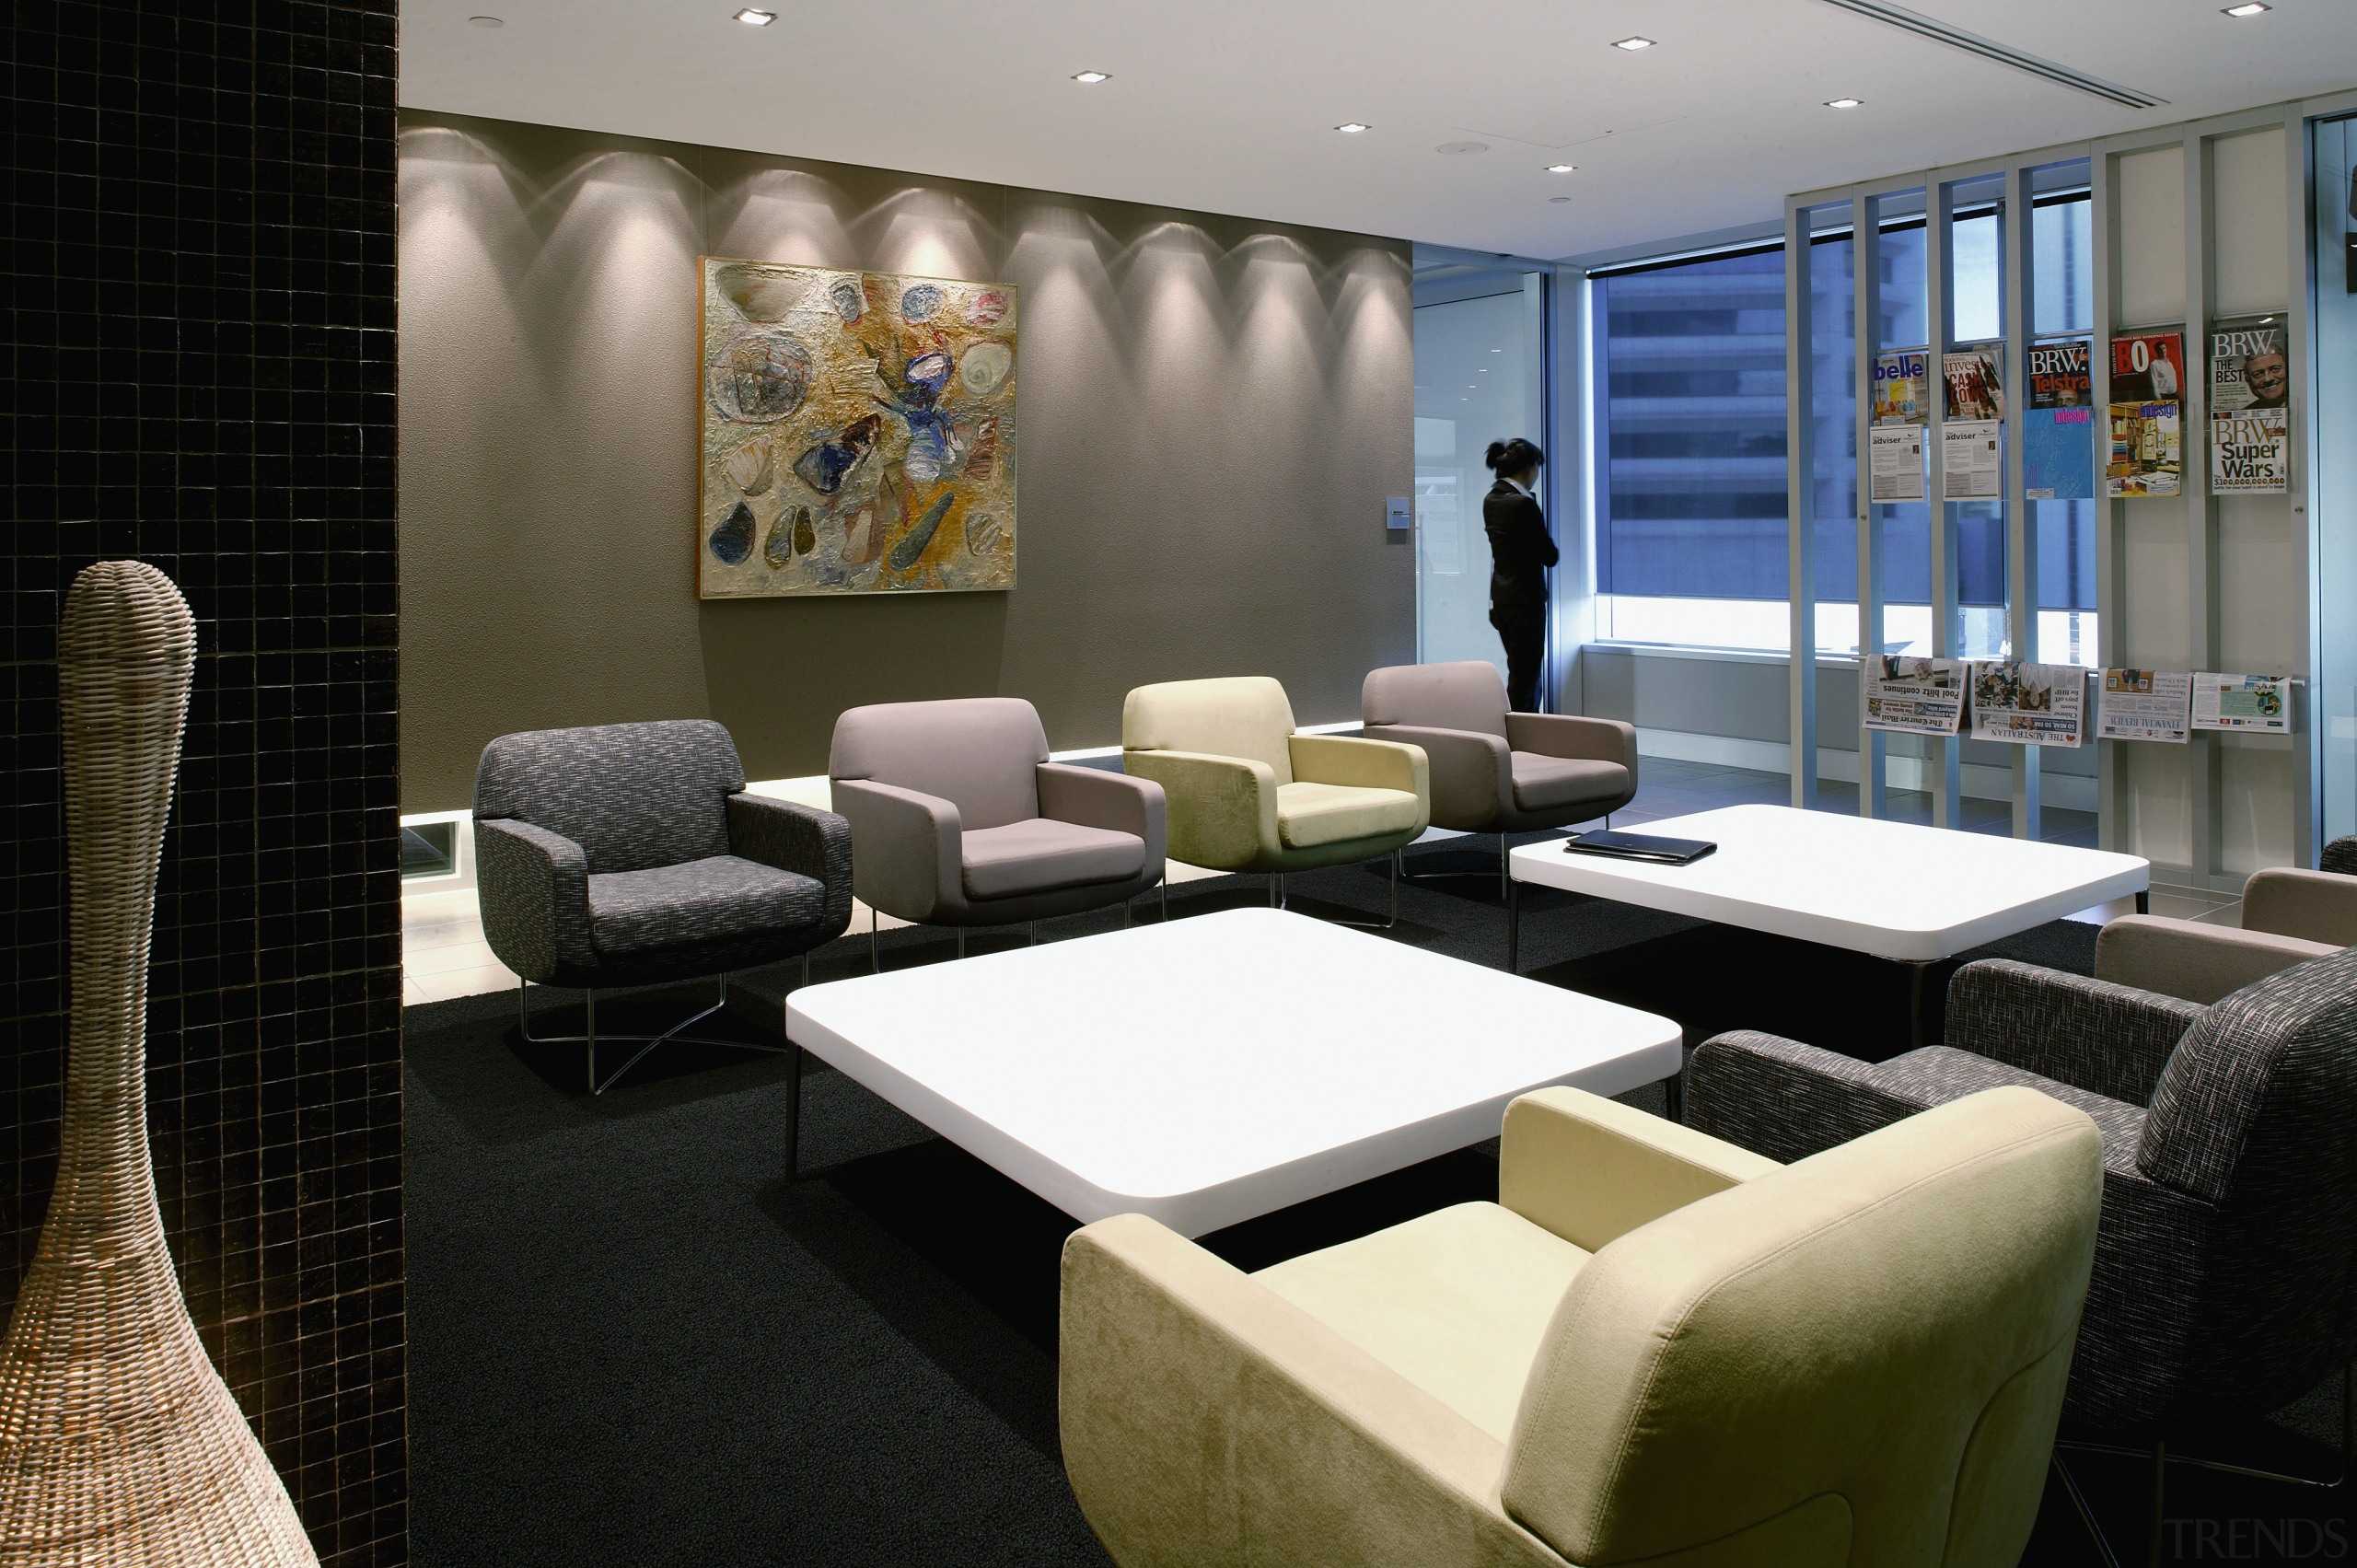 View of the client waiting area, carpet, dark furniture, interior design, black, gray